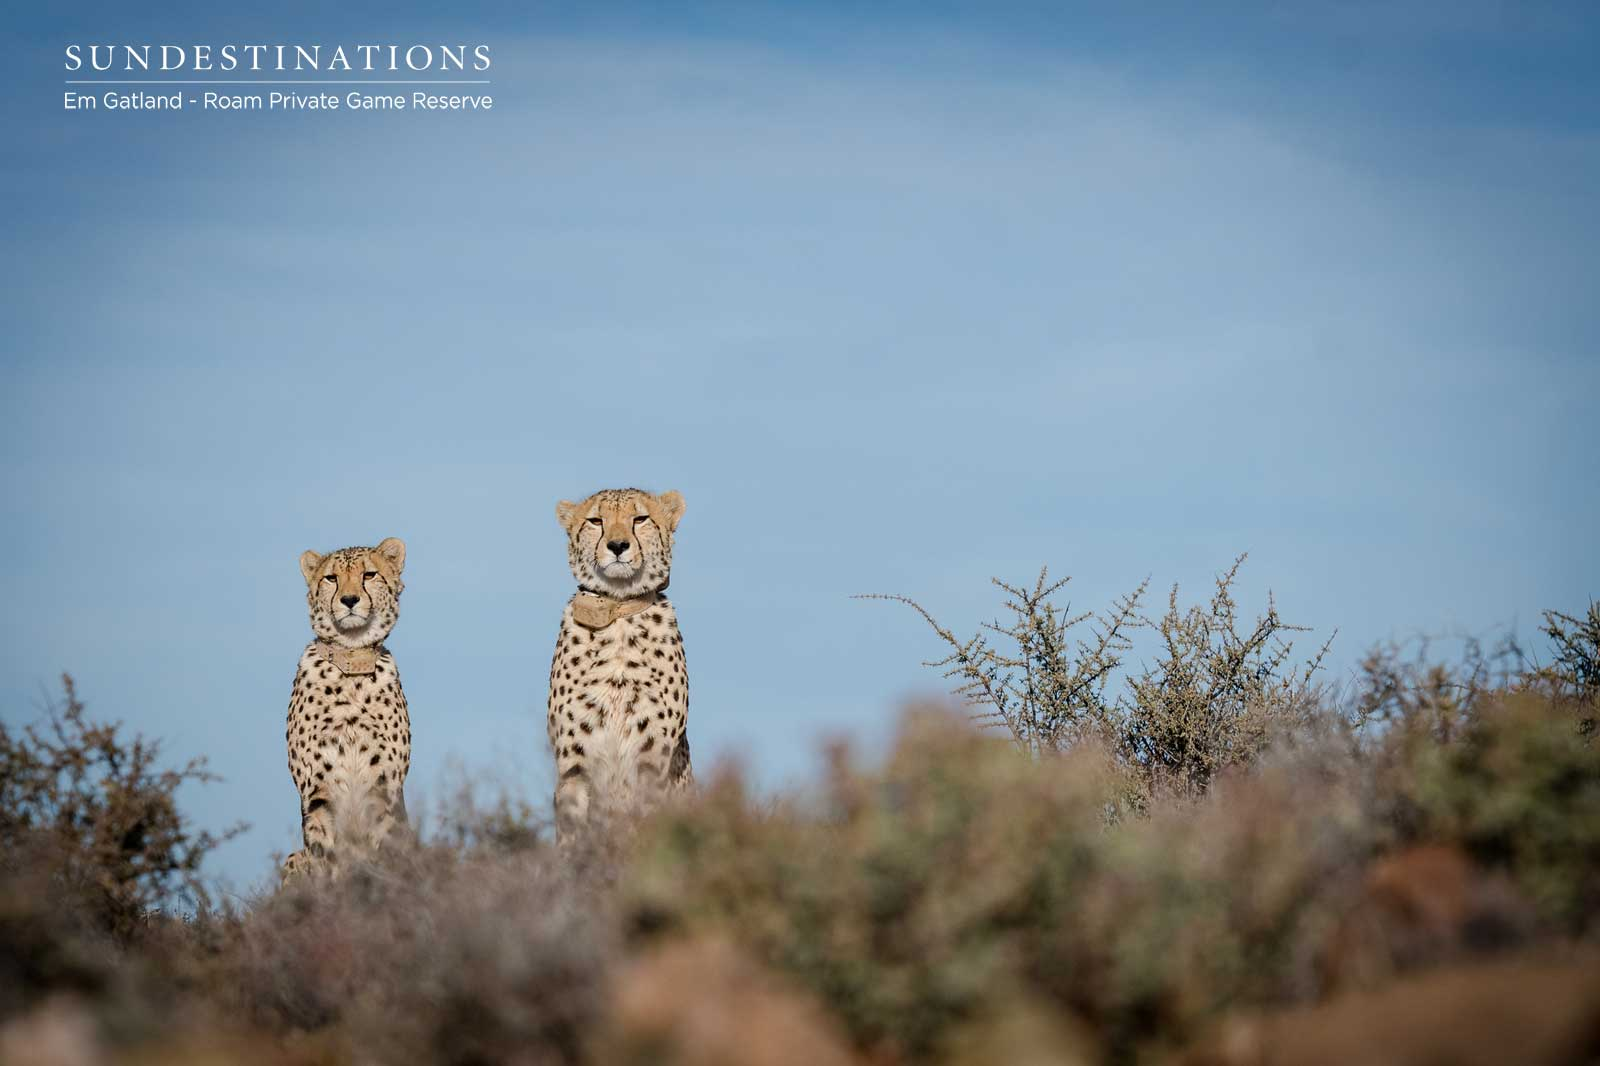 Spending Time with the Cheetah of Roam Private Game Reserve